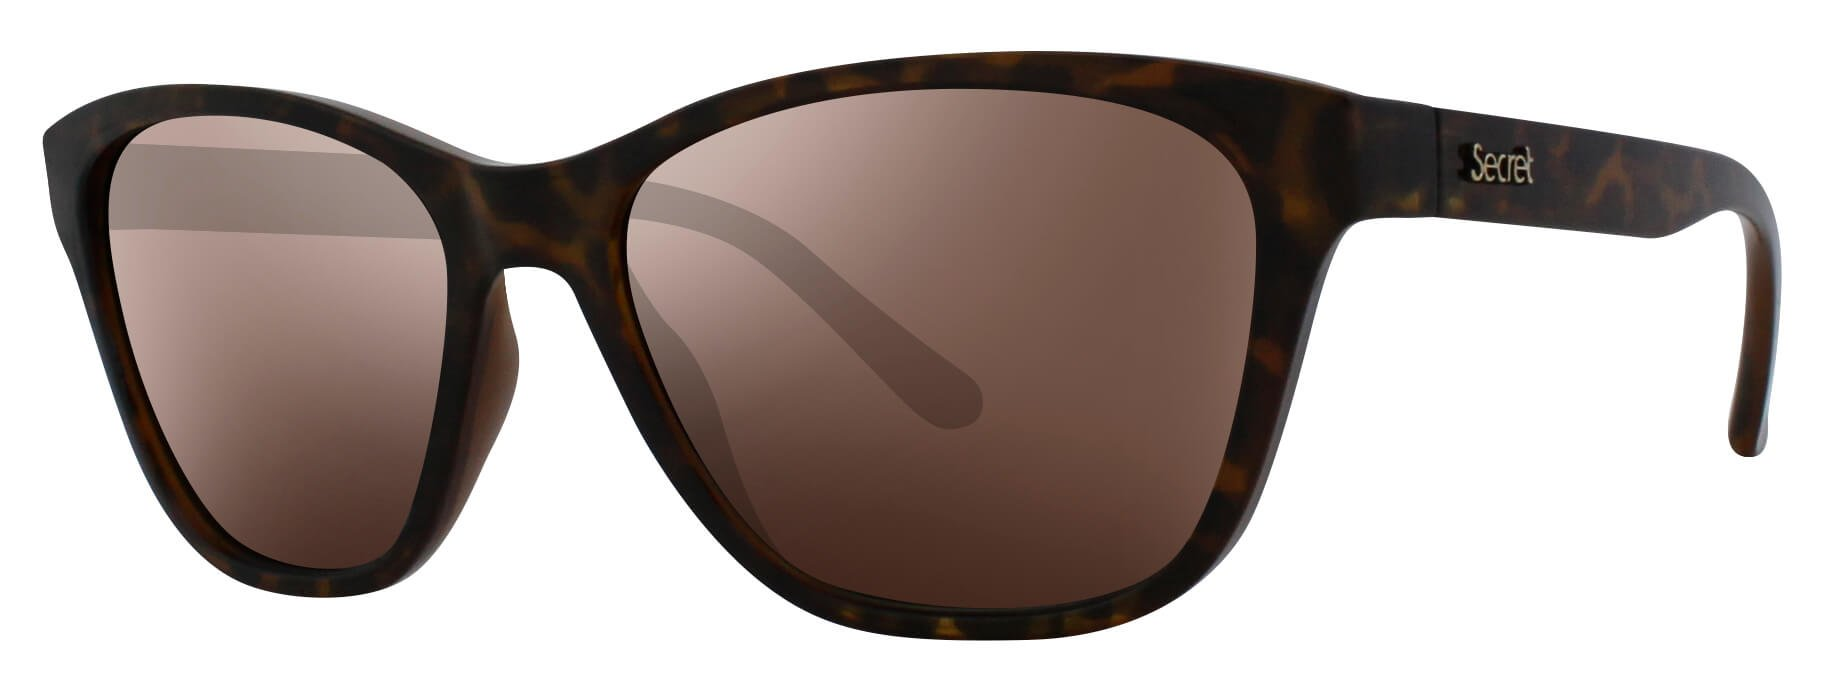 ÓC SECRET NARA HAVANA TURTLE / POLARIZED GRADIENT BROWN